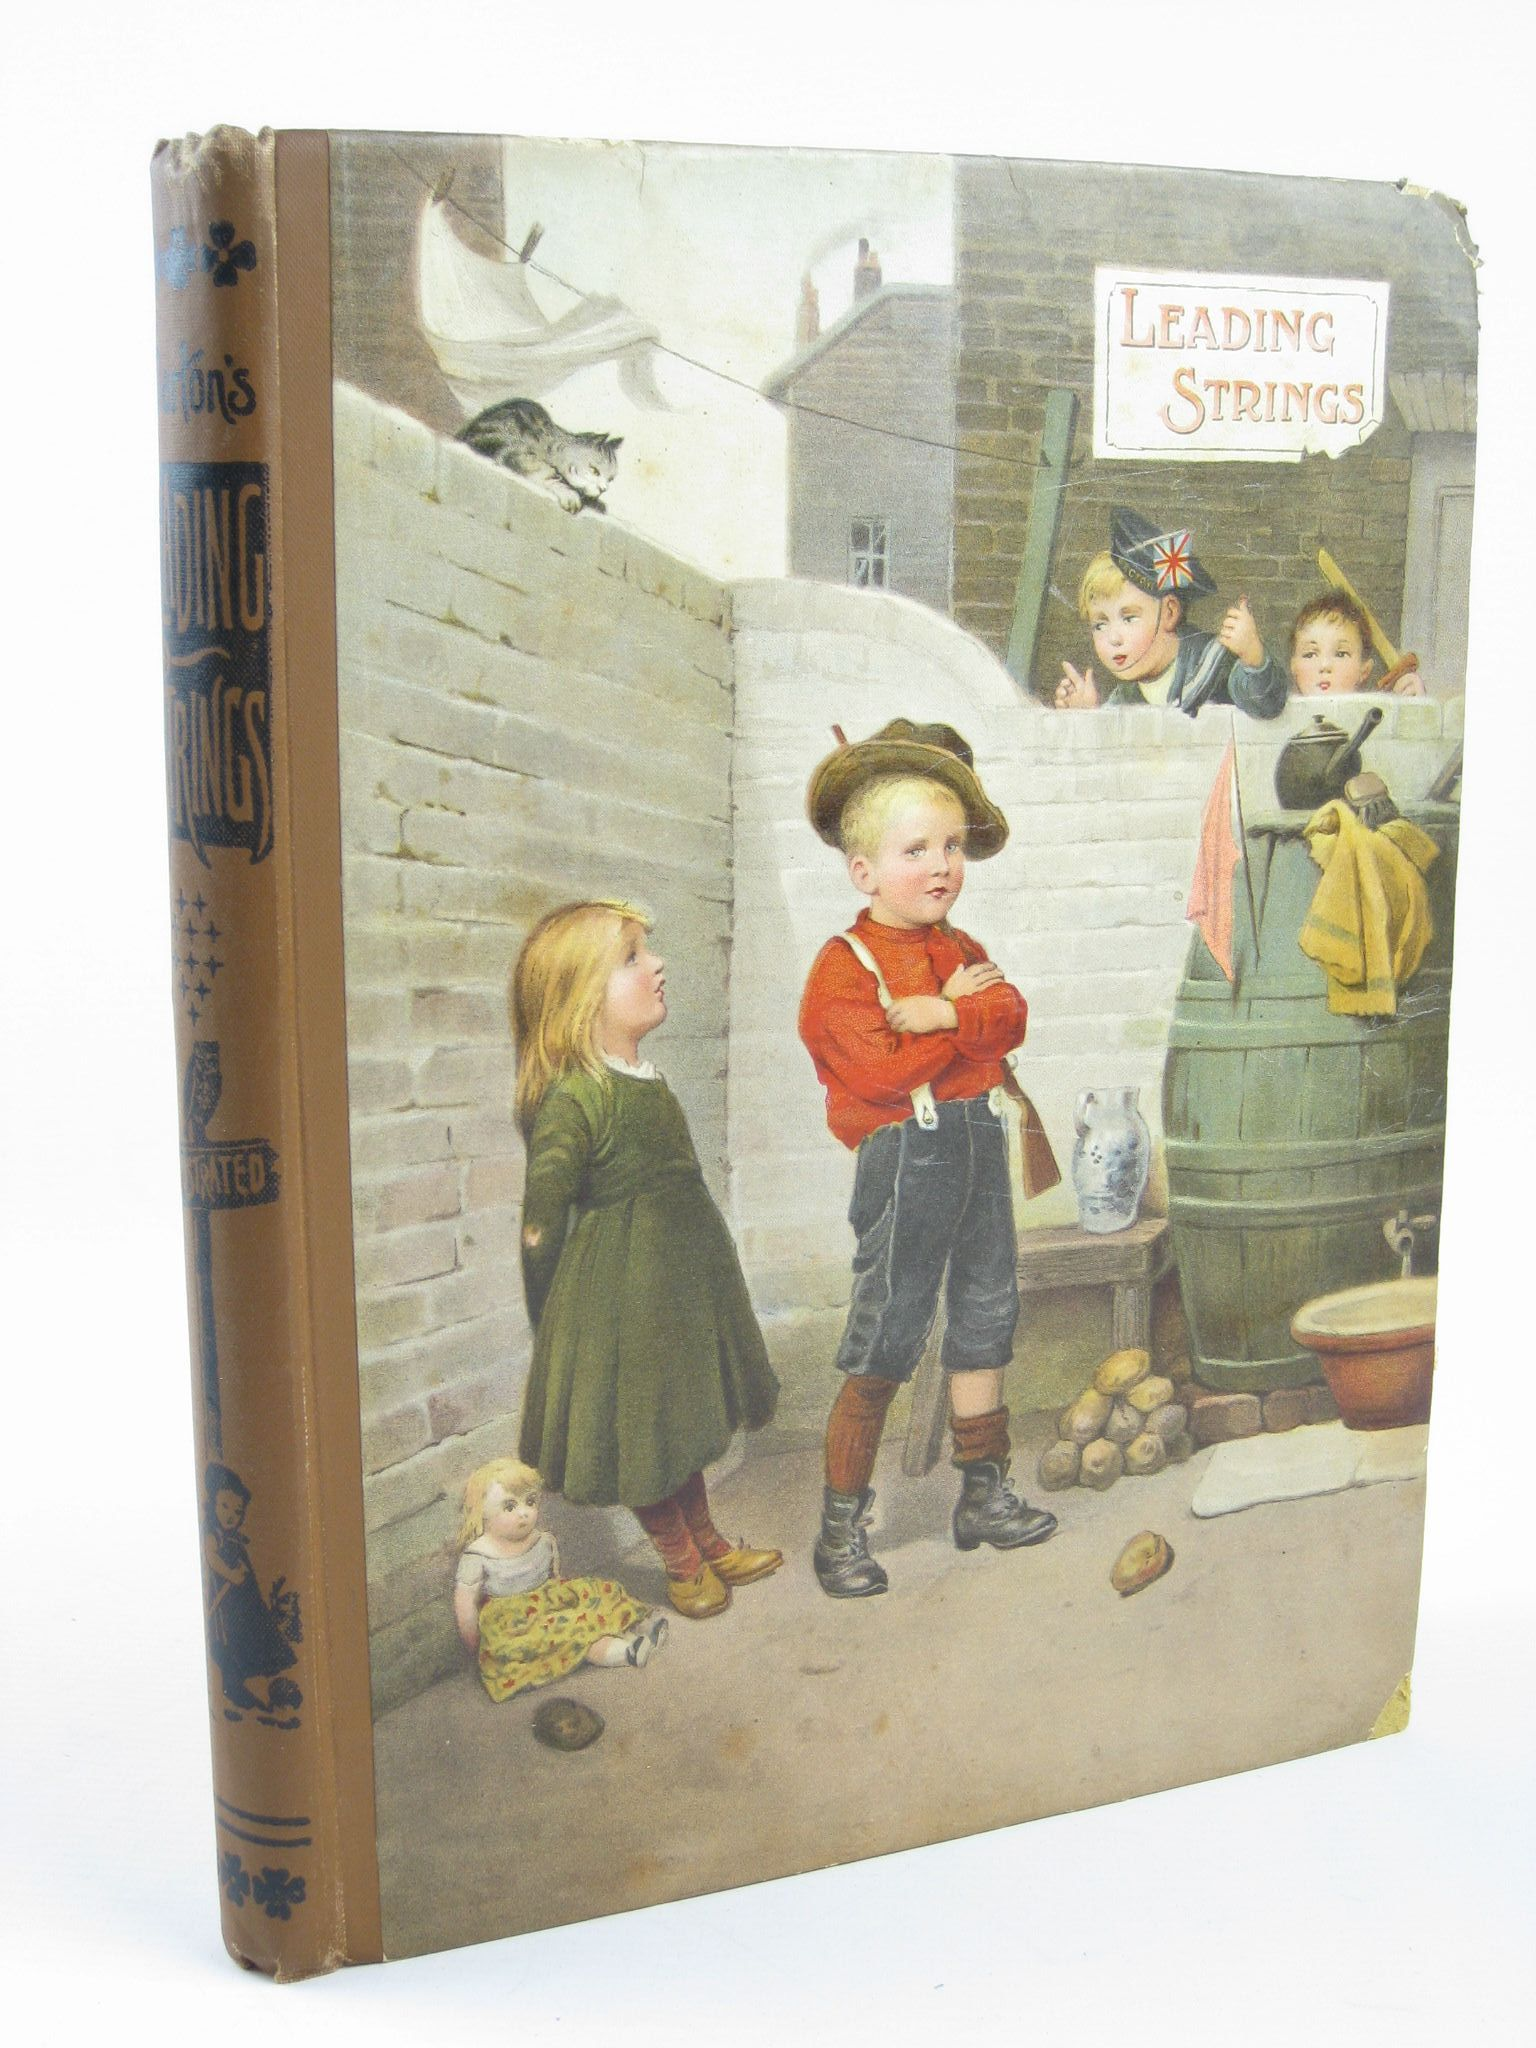 Photo of LEADING STRINGS published by Wells Gardner, Darton & Co. (STOCK CODE: 1311258)  for sale by Stella & Rose's Books